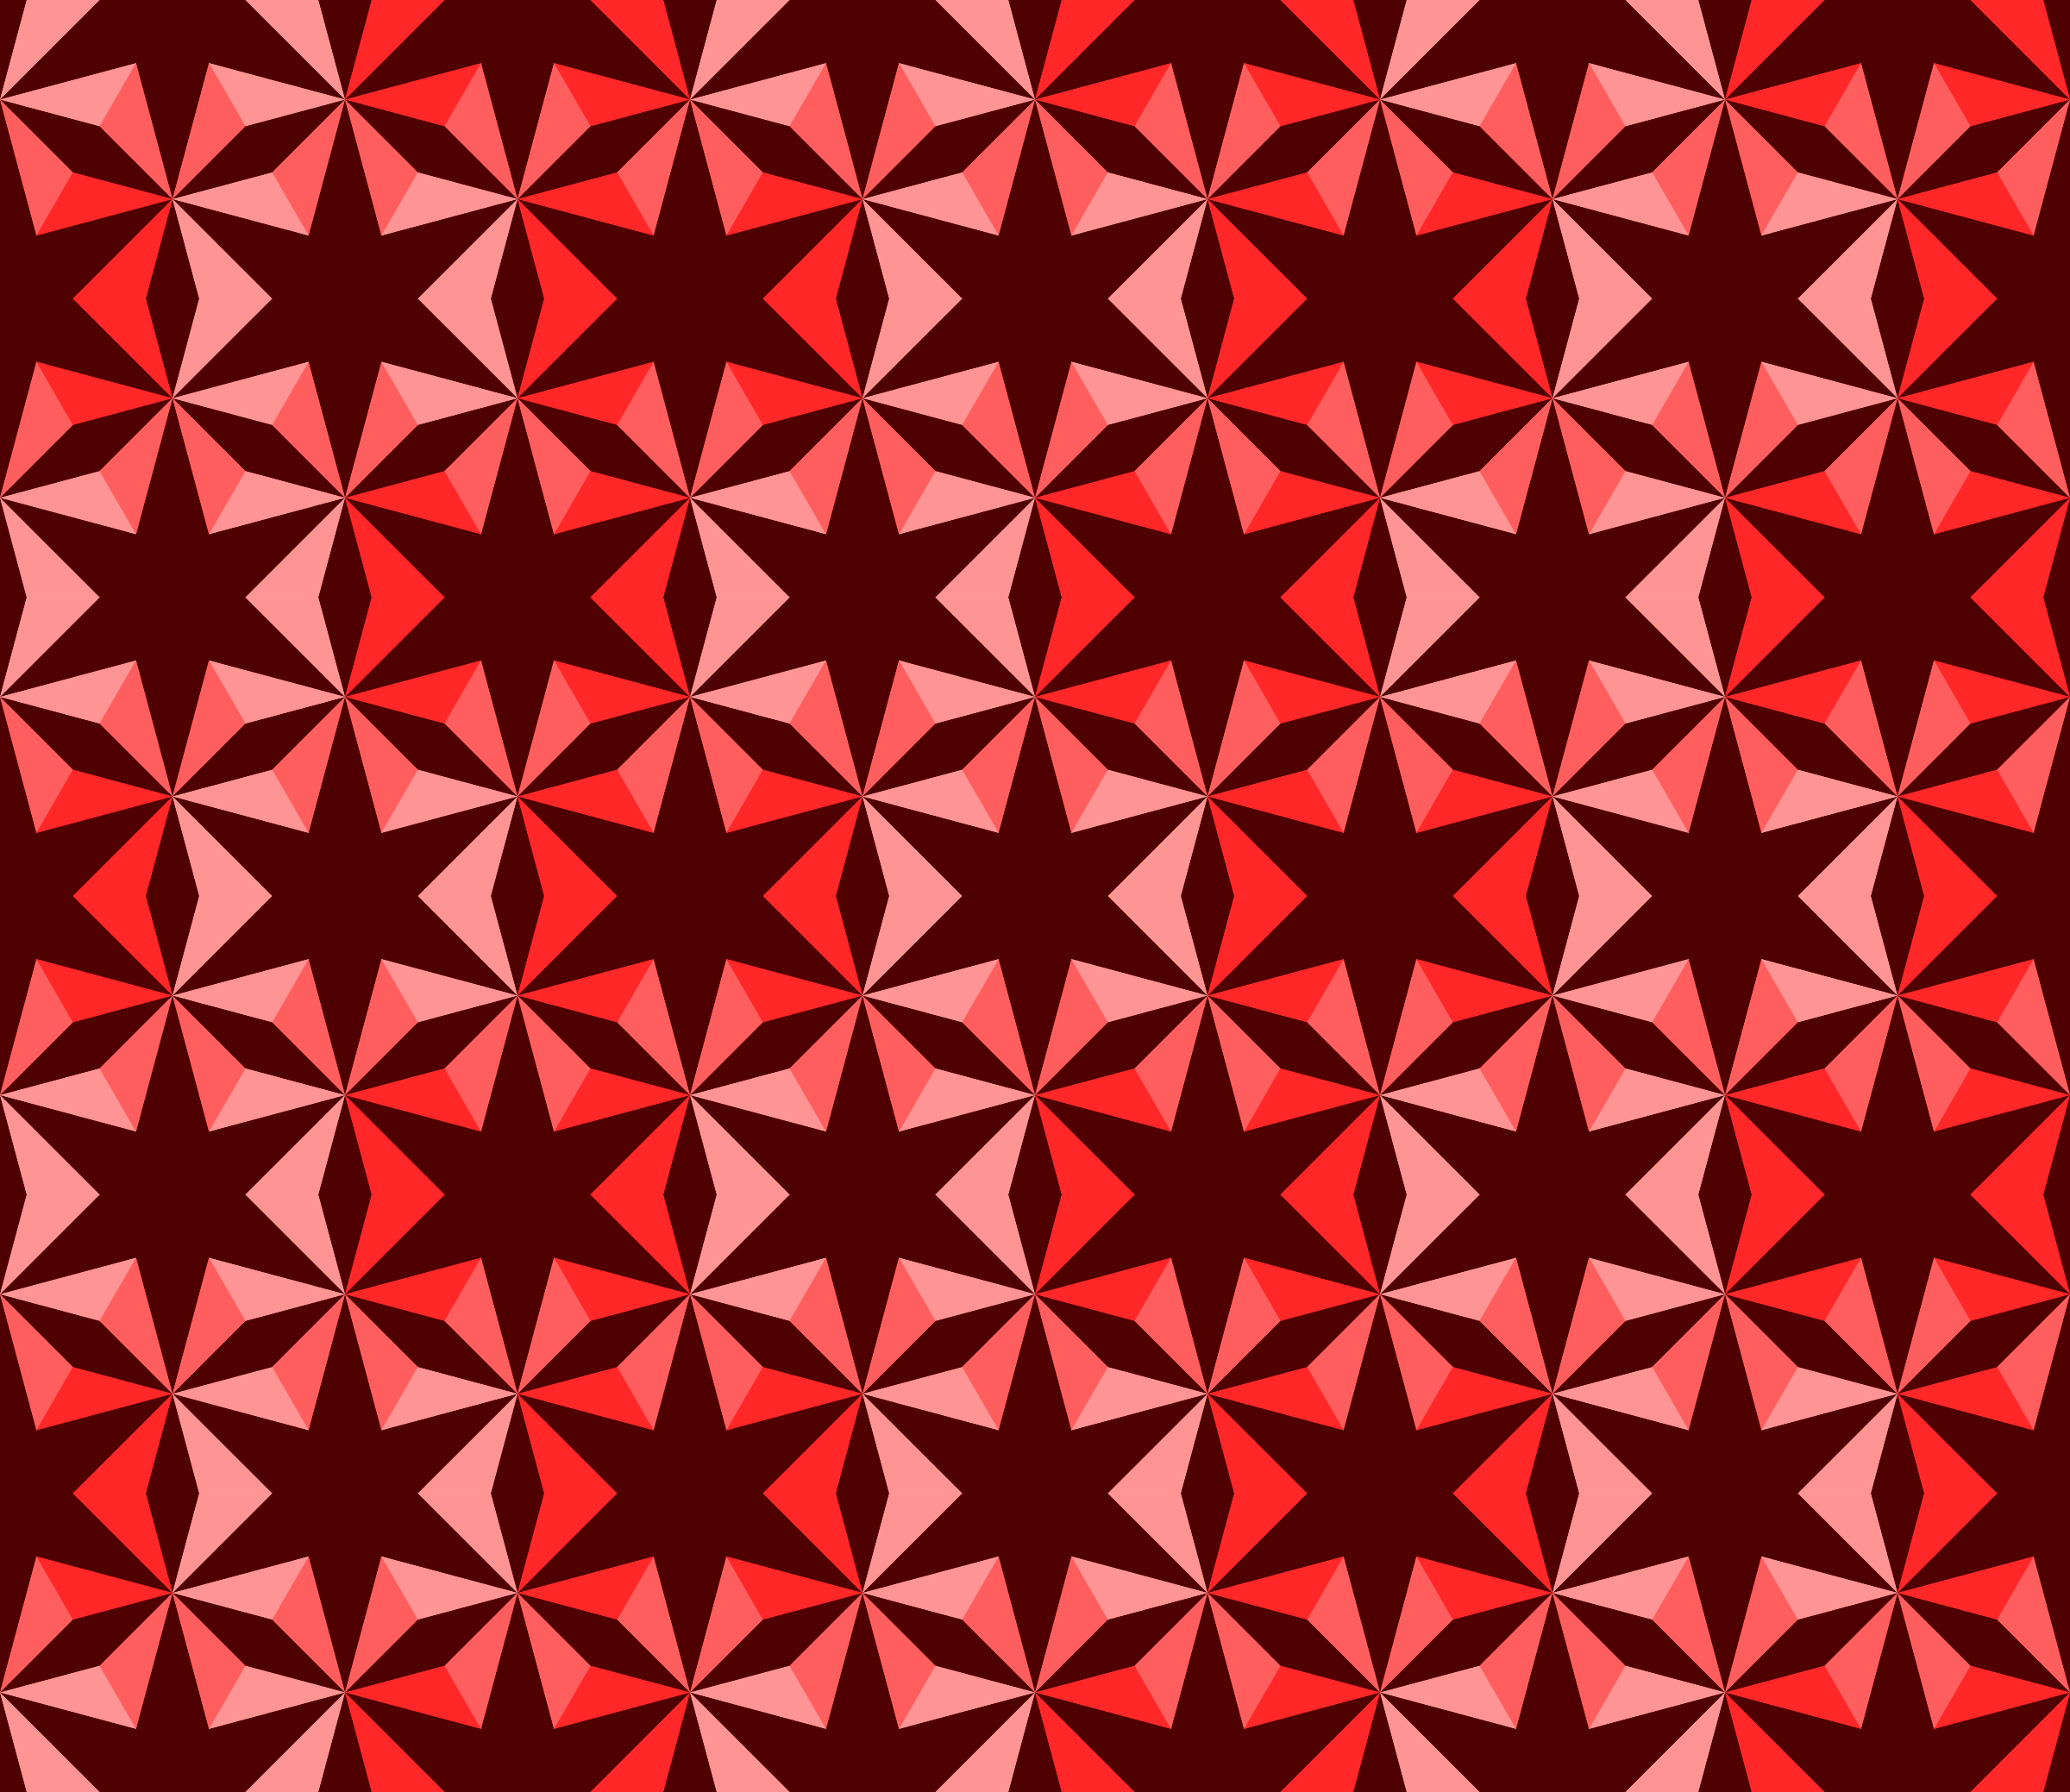 Background pattern 163 by Firkin